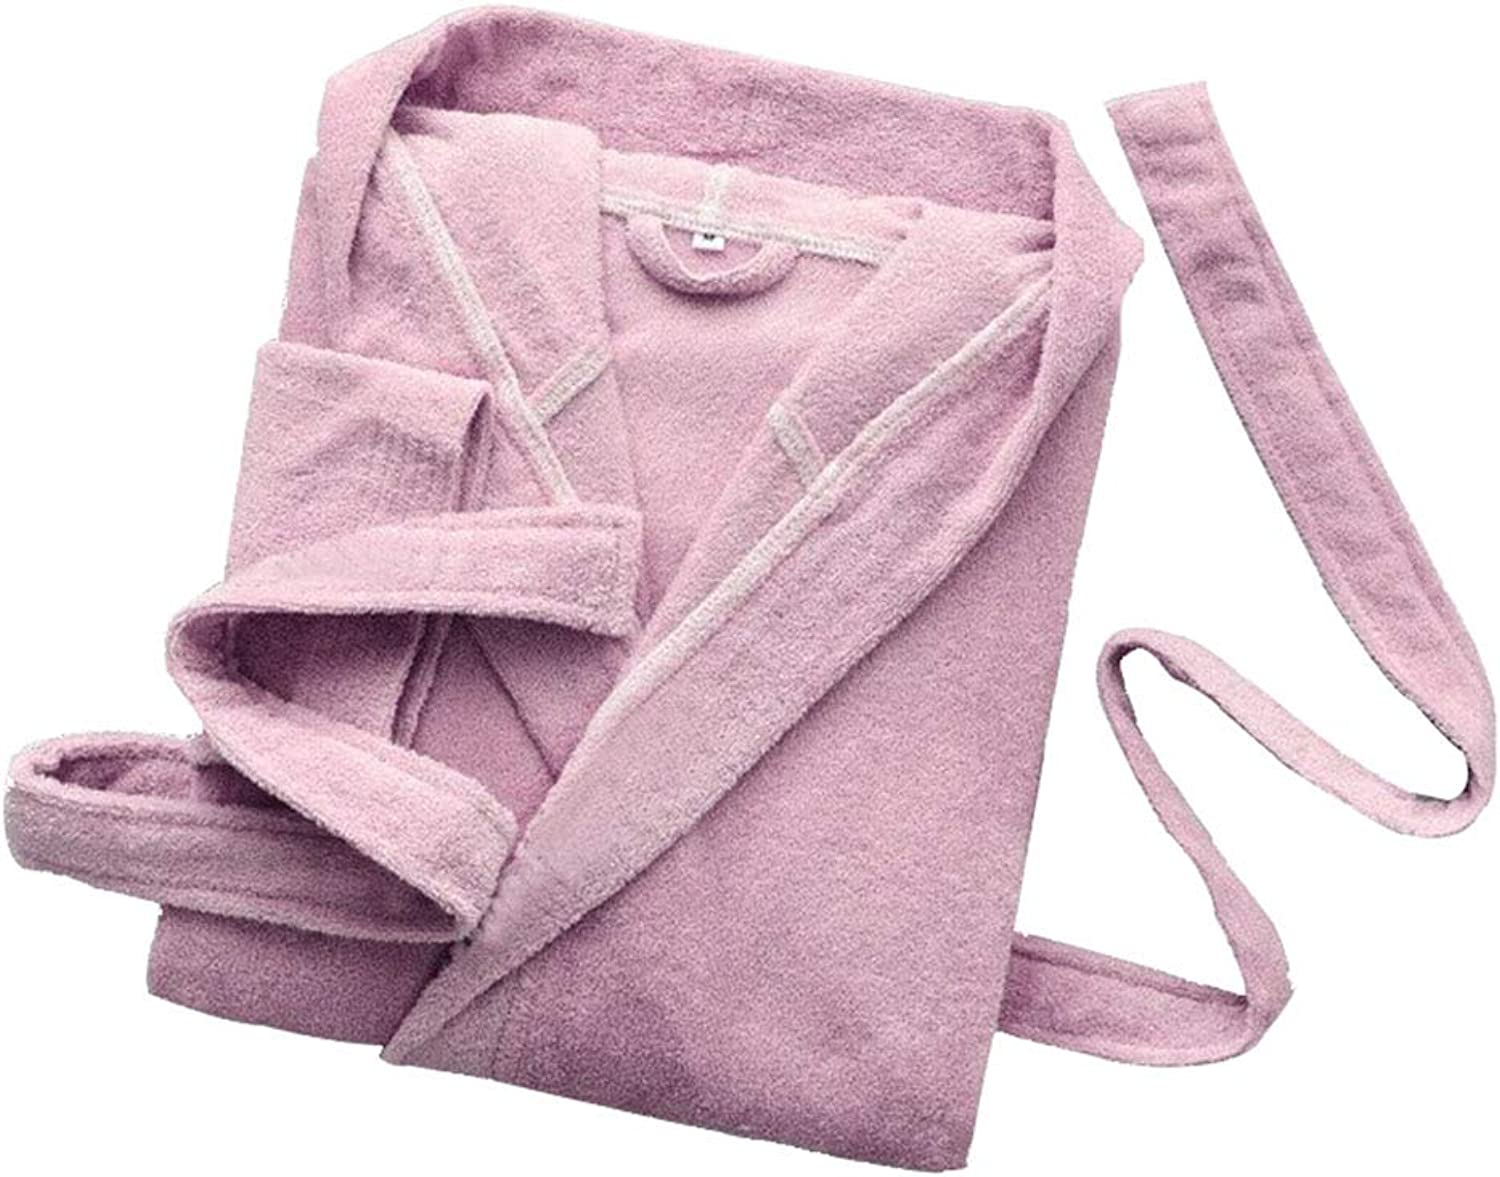 Hooded Bathrobe, Unisex Hotel Cotton Absorbent Towel Robes, Men's and Women's Long Dressing Gowns